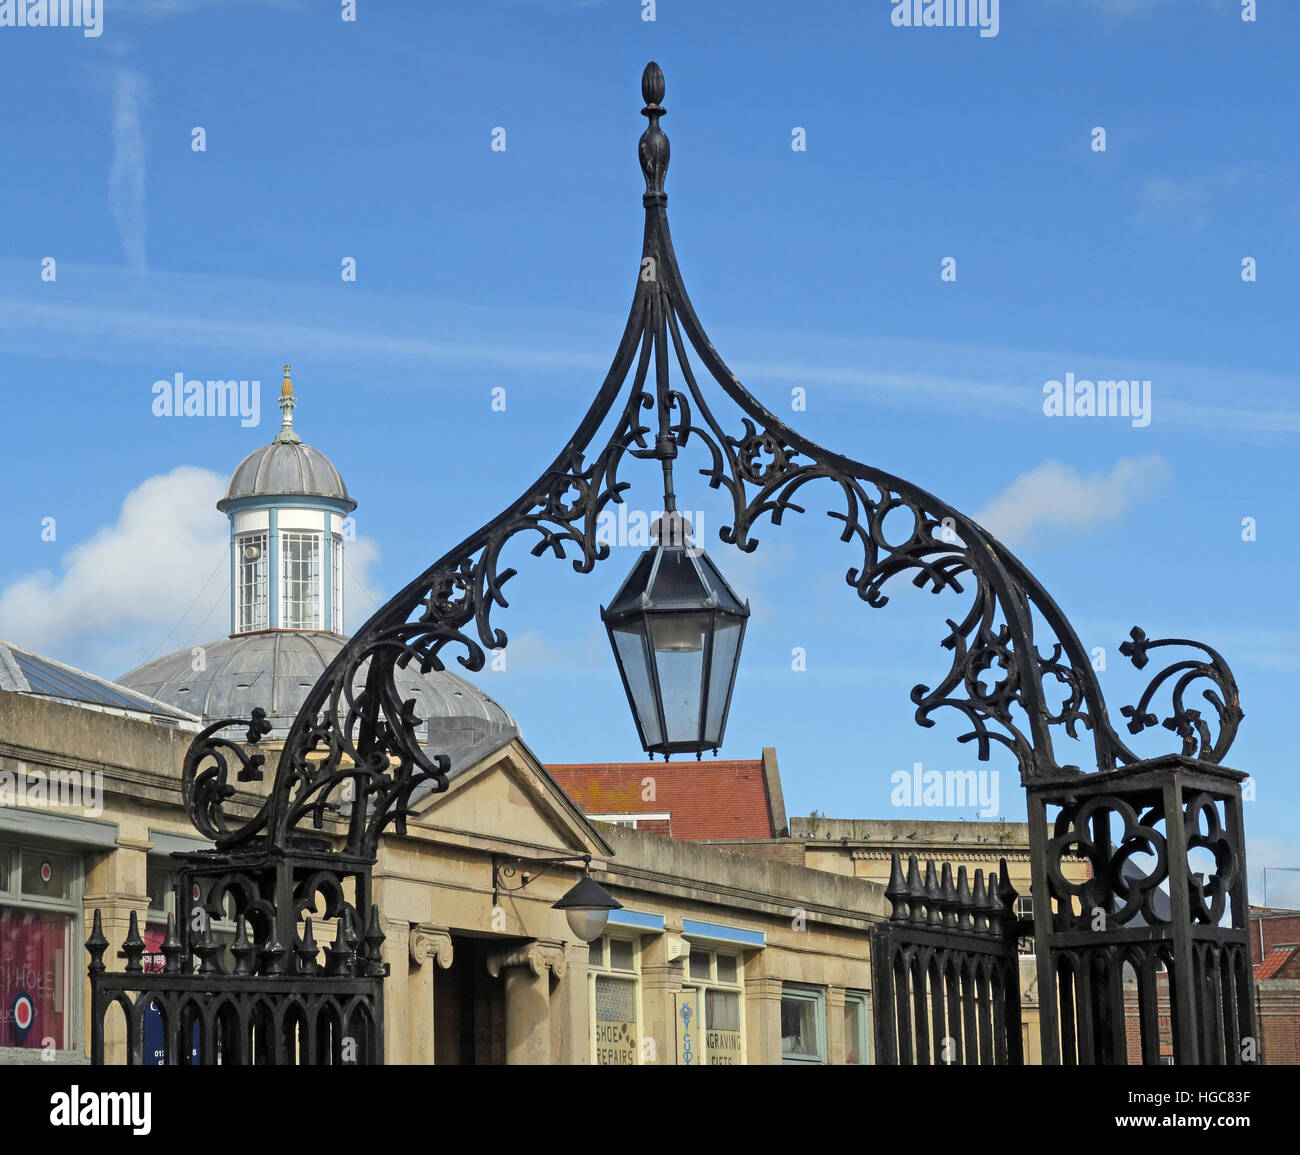 Historic Bridgwater - St Marys Church - Somerset, England, UK - Stock Image